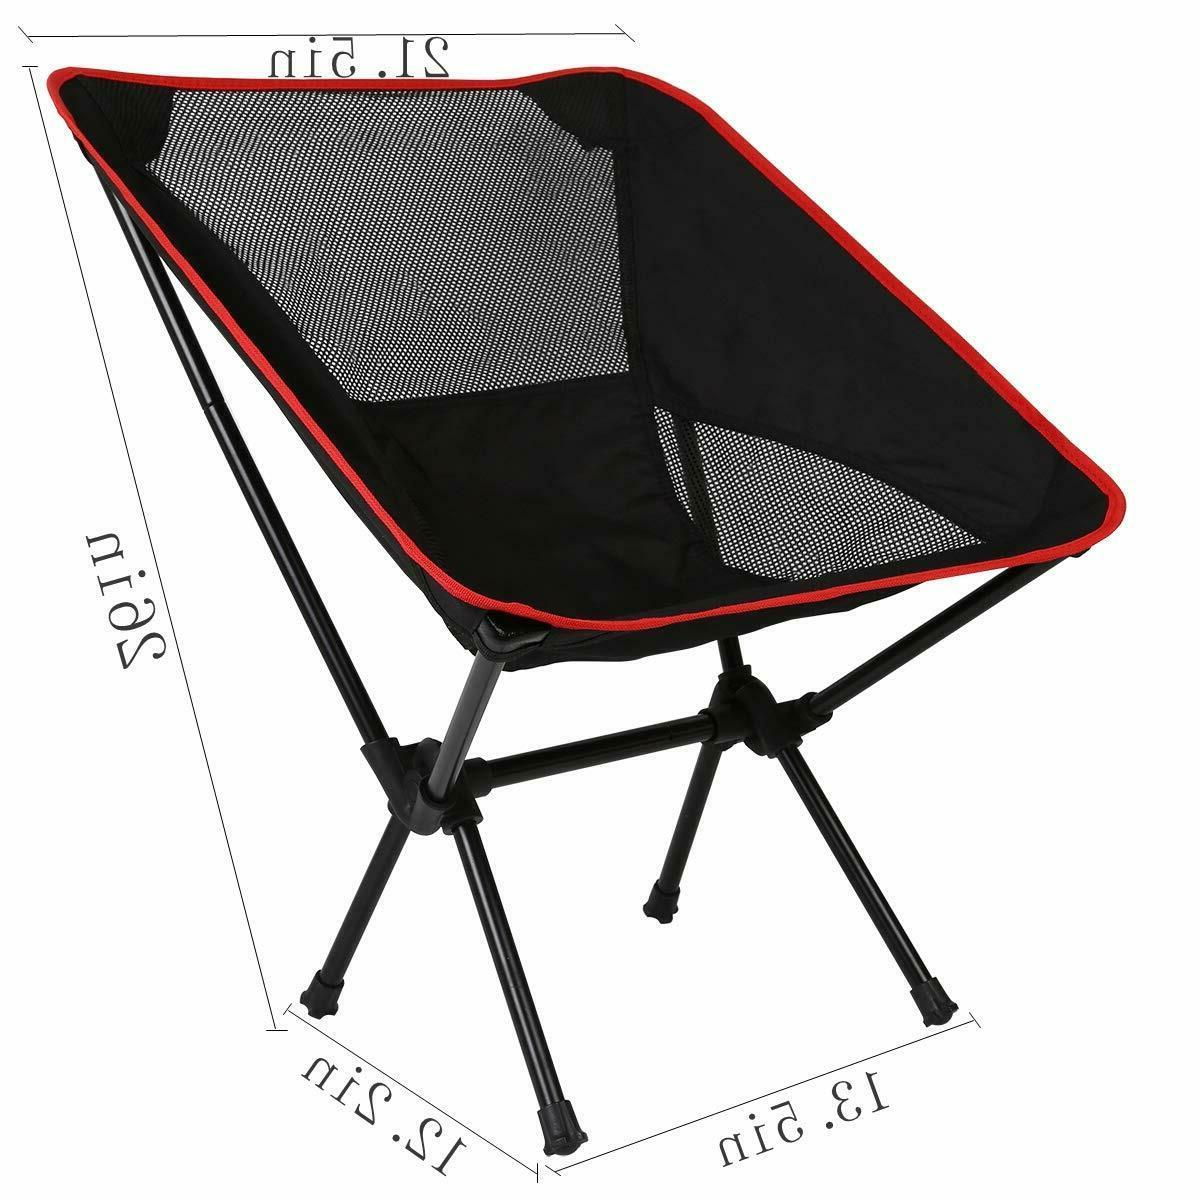 Ultralight Folding Camping Chair, Compact stool